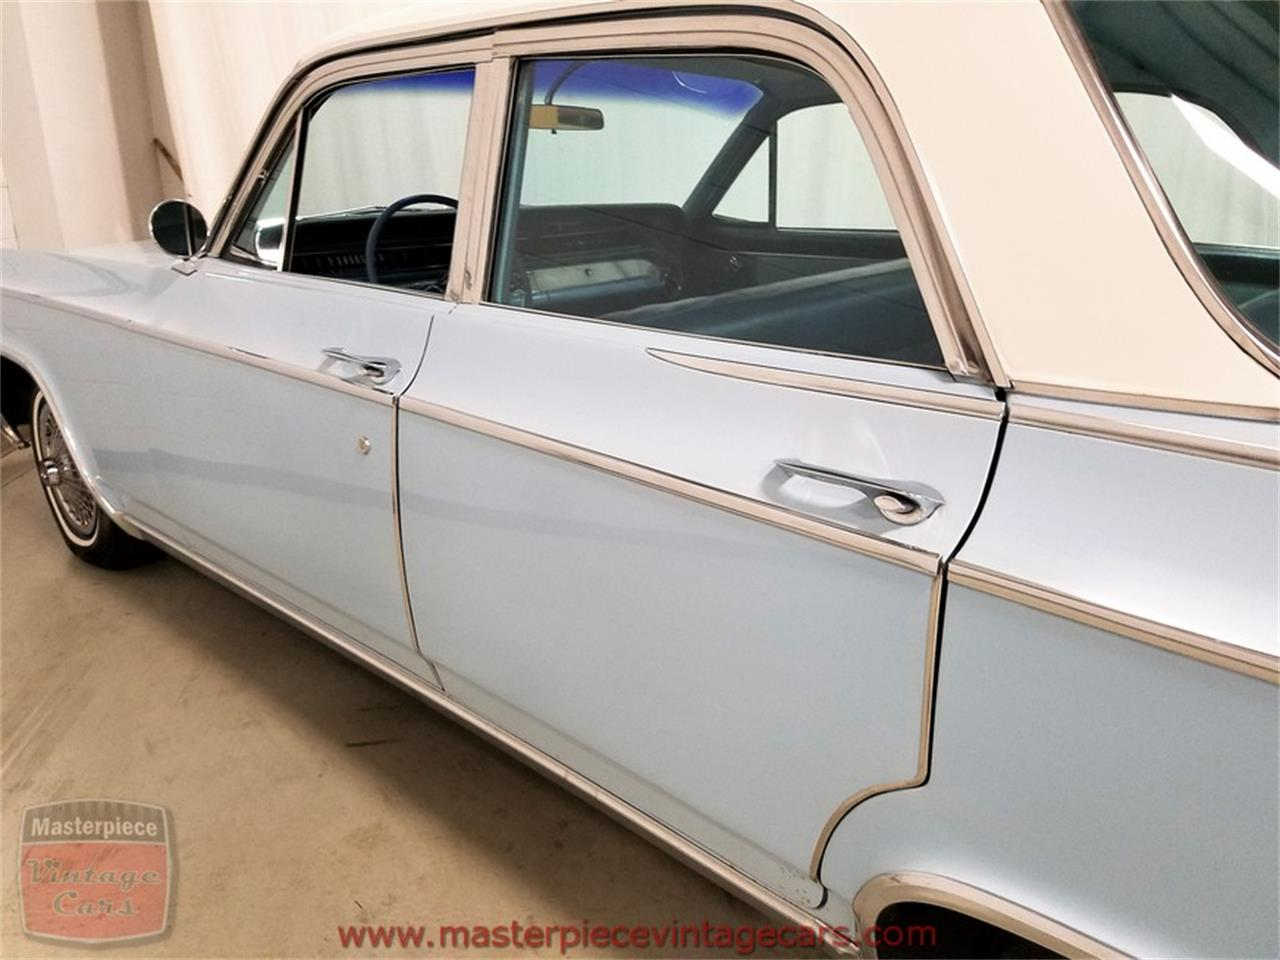 1964 Oldsmobile Super 88 for sale in Whiteland, IN – photo 23